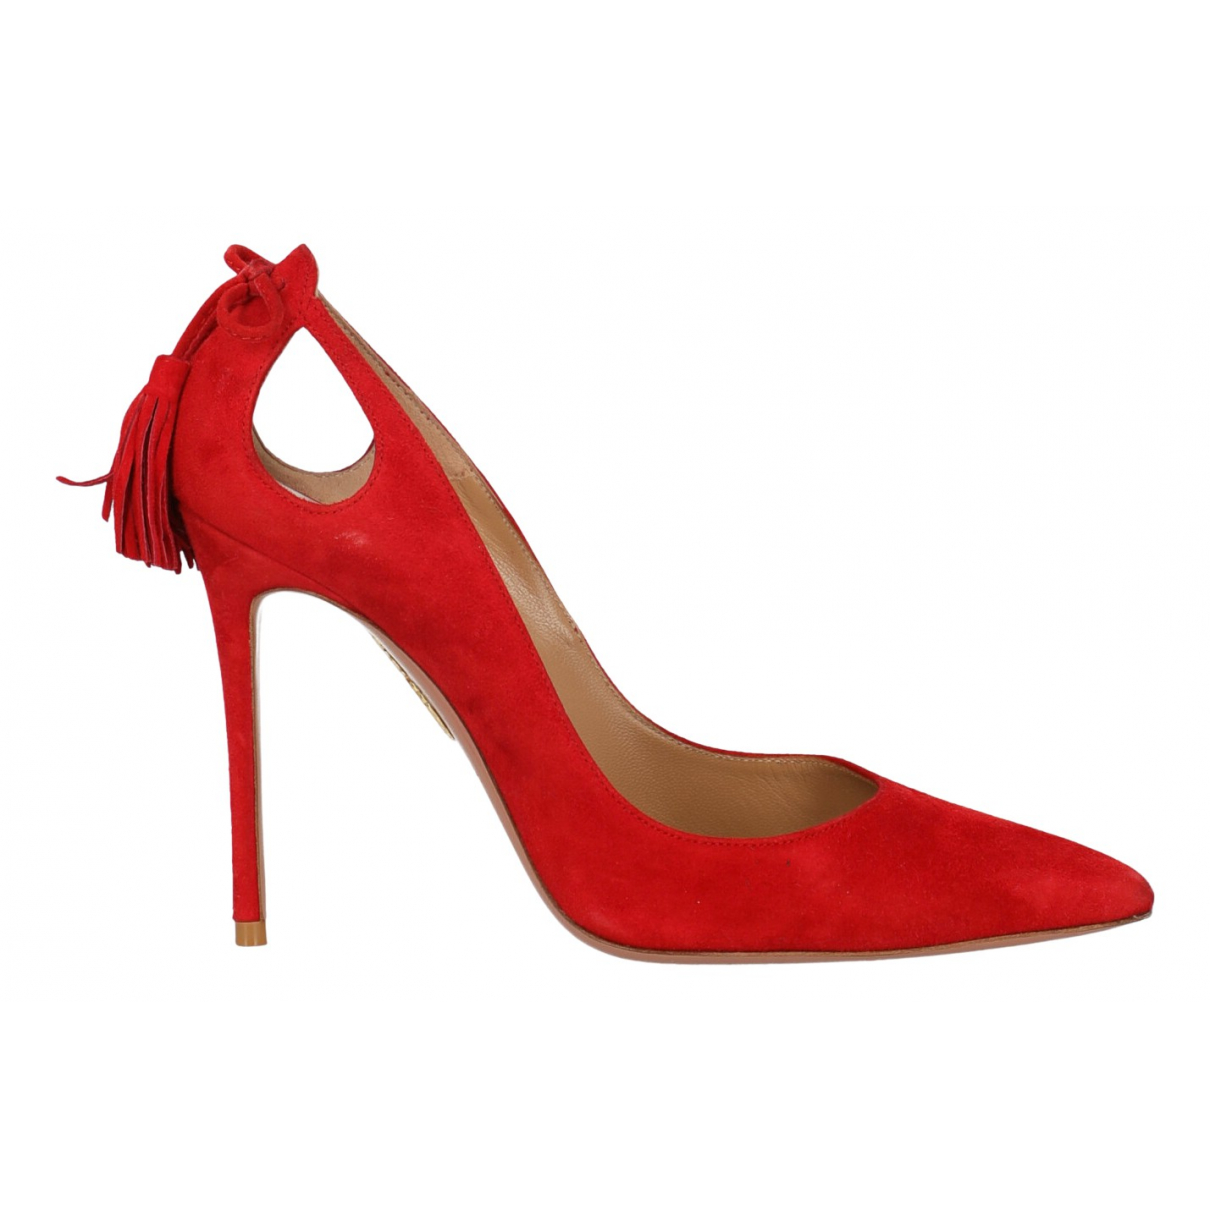 Aquazzura N Red Suede Heels for Women 36 IT